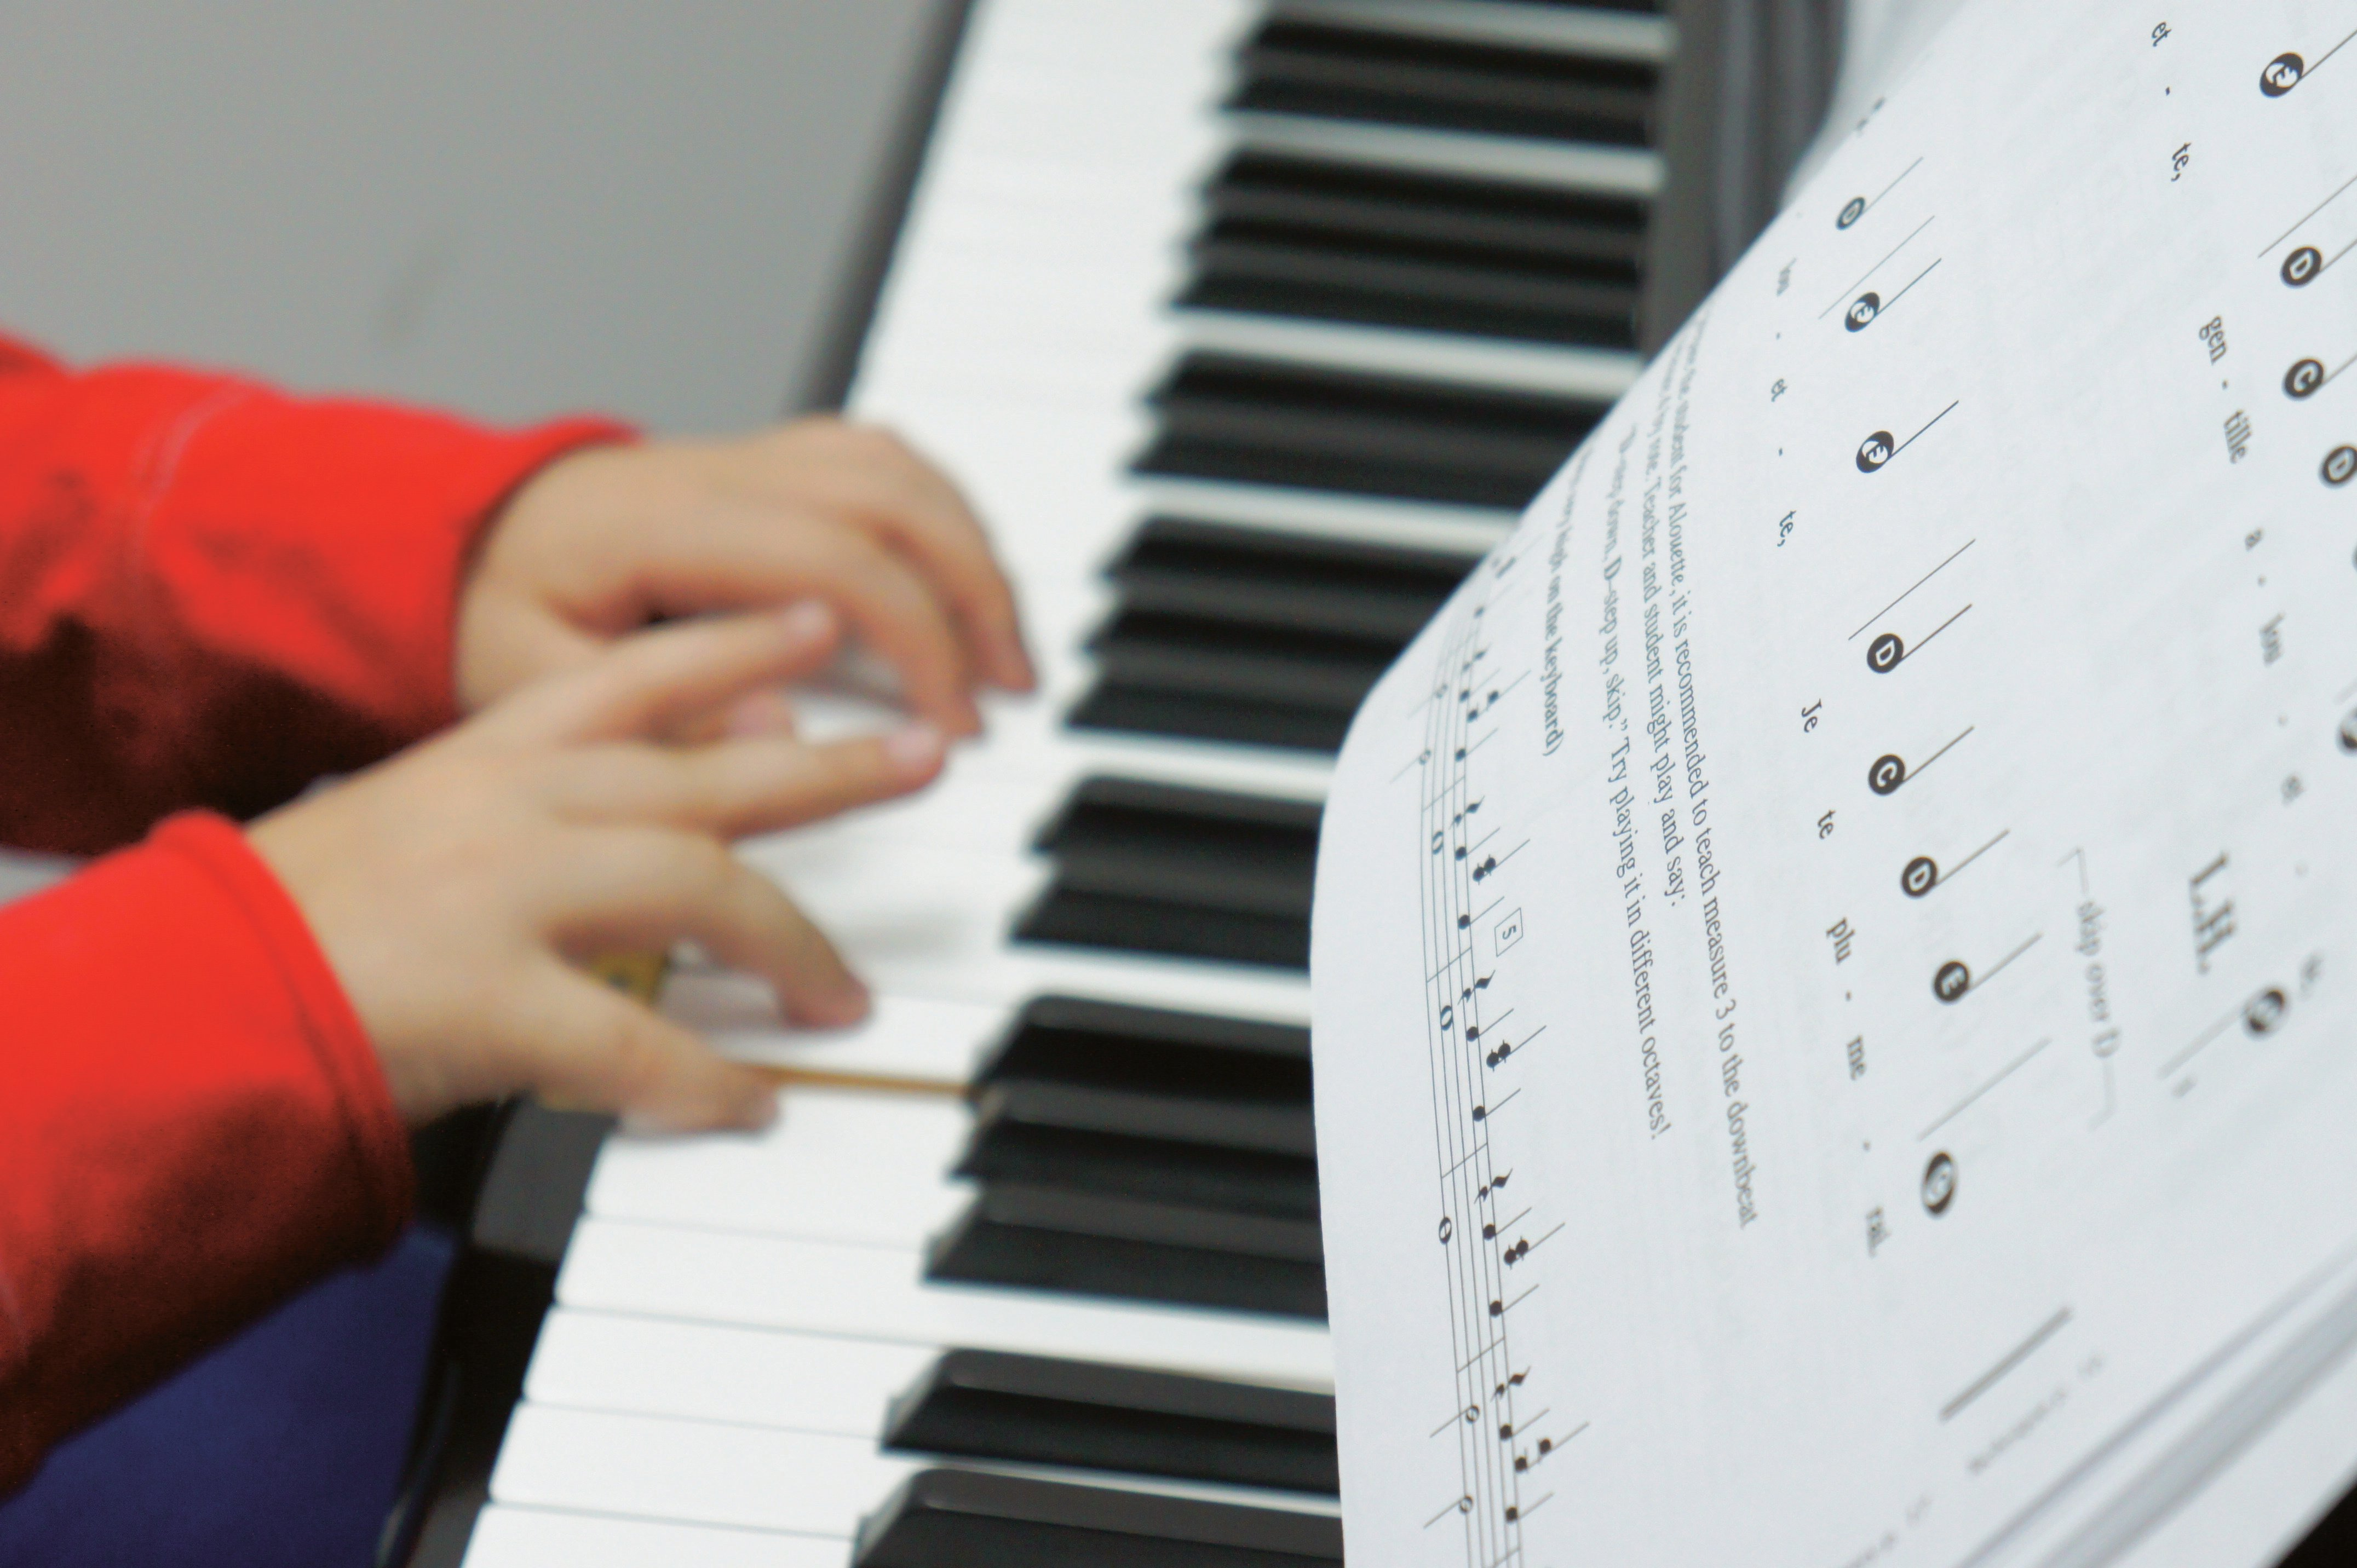 Music Beans in Lower Manhattan offers new music classes for kids.